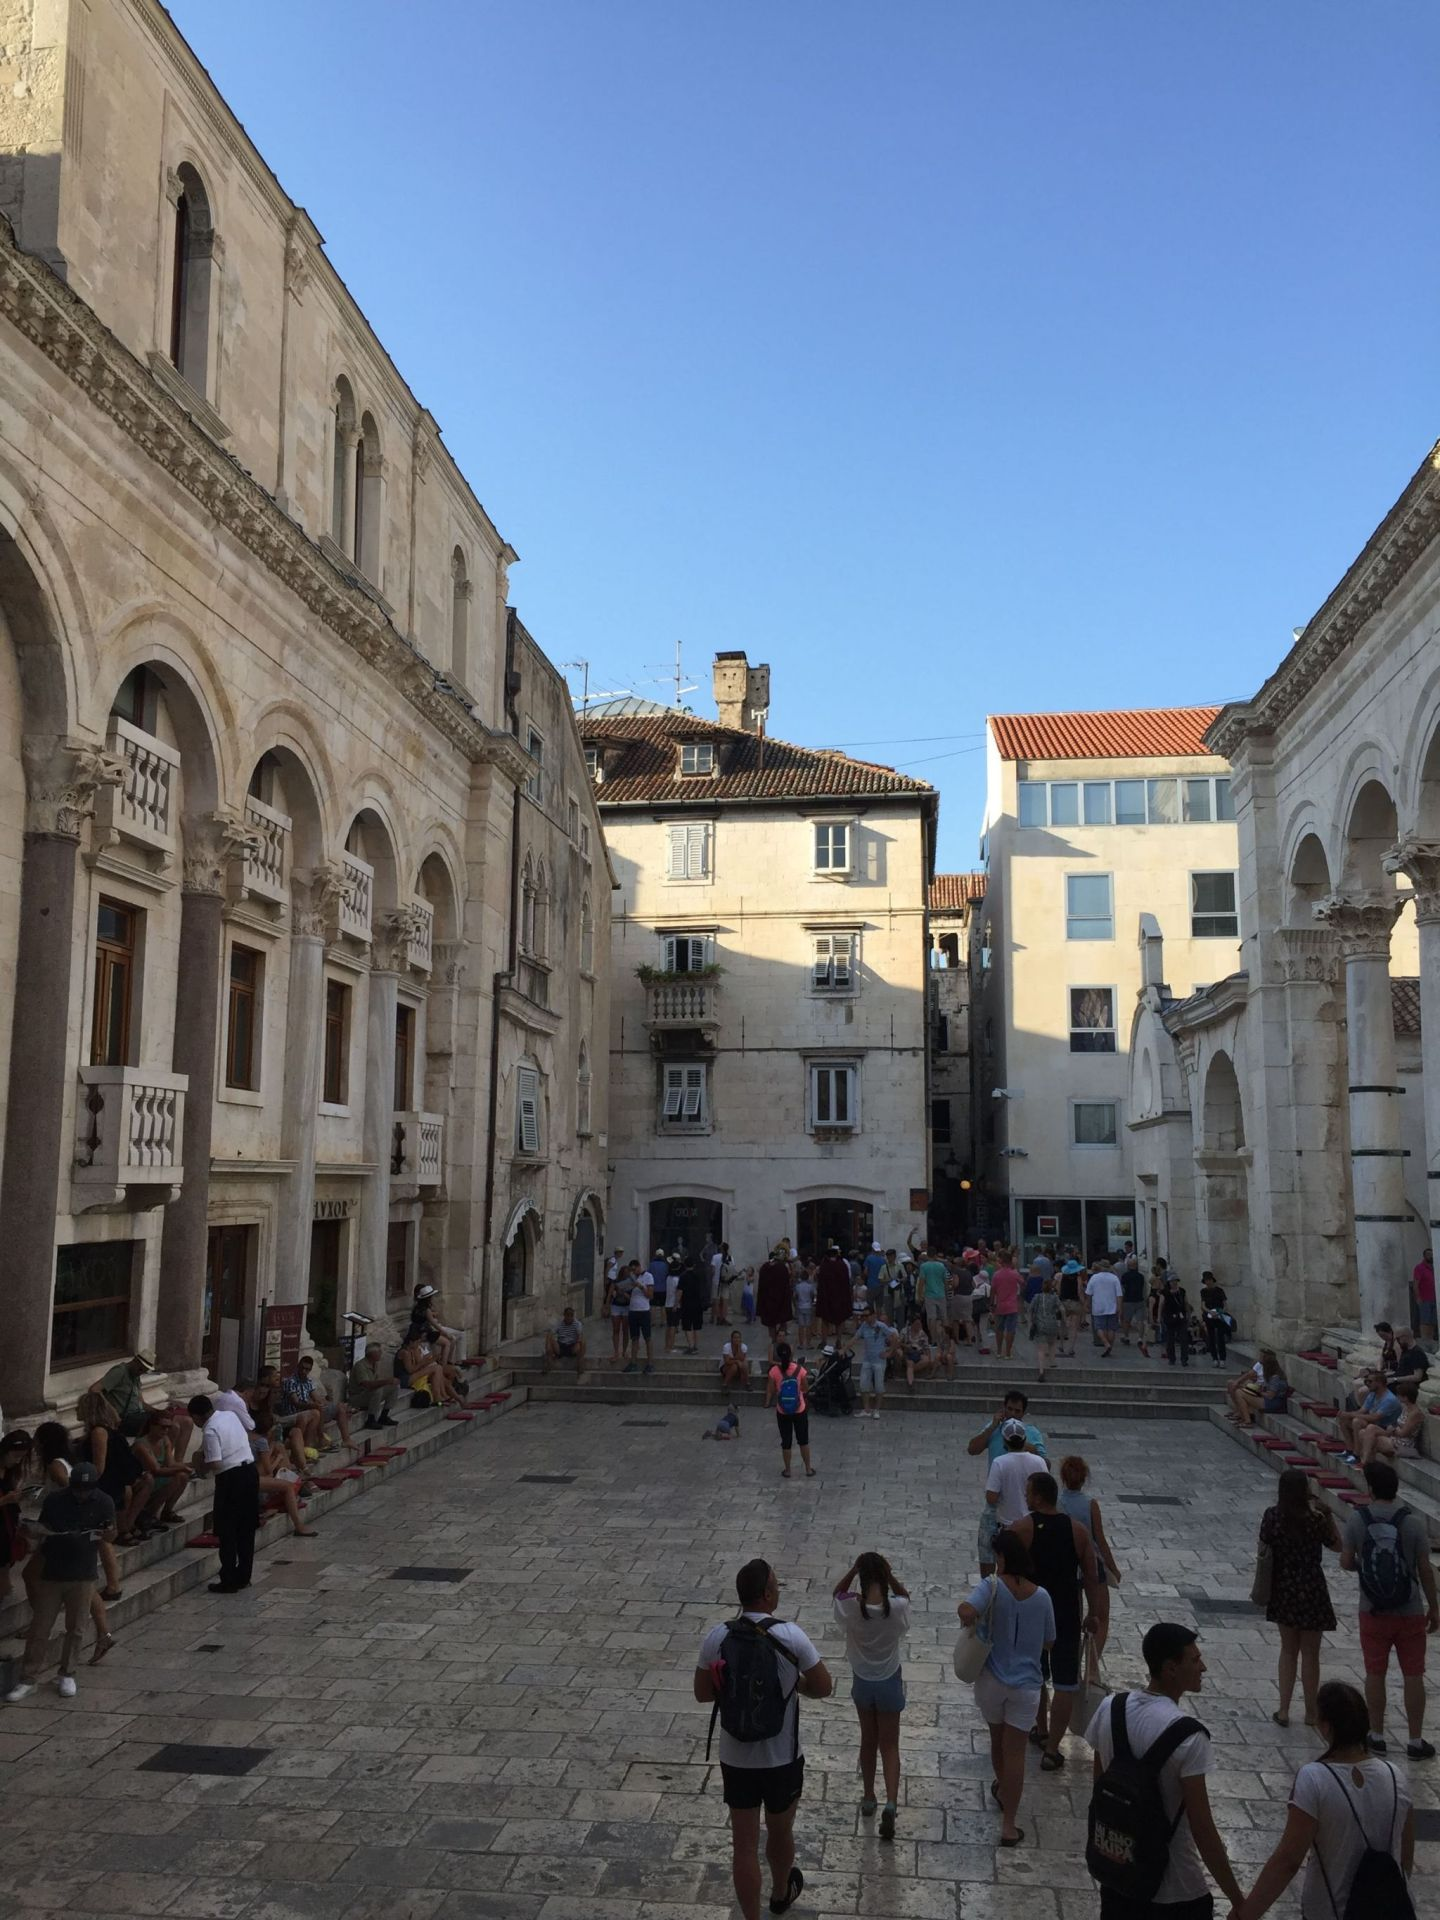 Courtyard of the Diocletian's Palace, Split